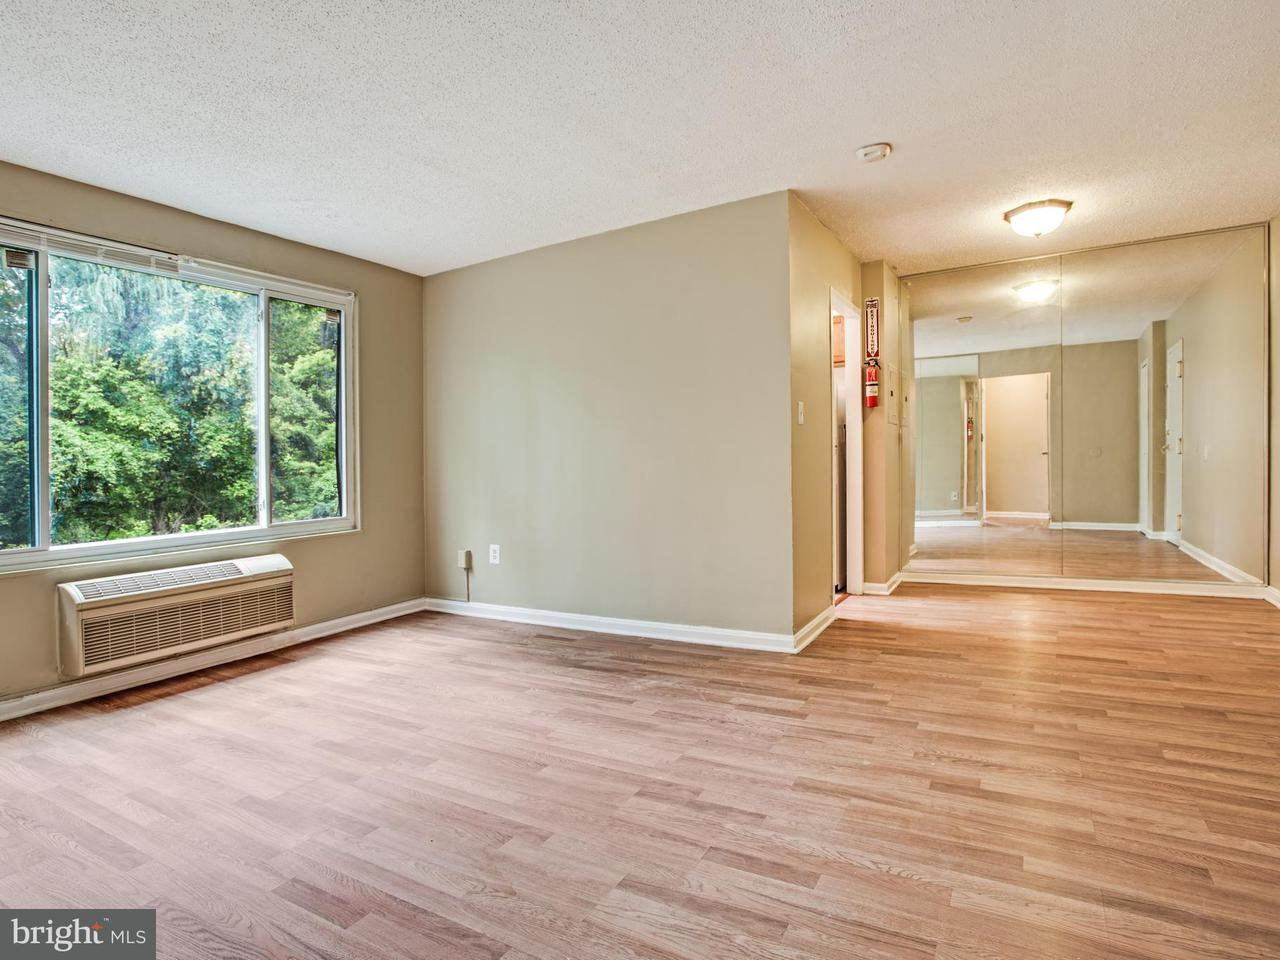 Condominium for Sale at 1907 Good Hope Rd SE #109 Washington, District Of Columbia 20020 United States